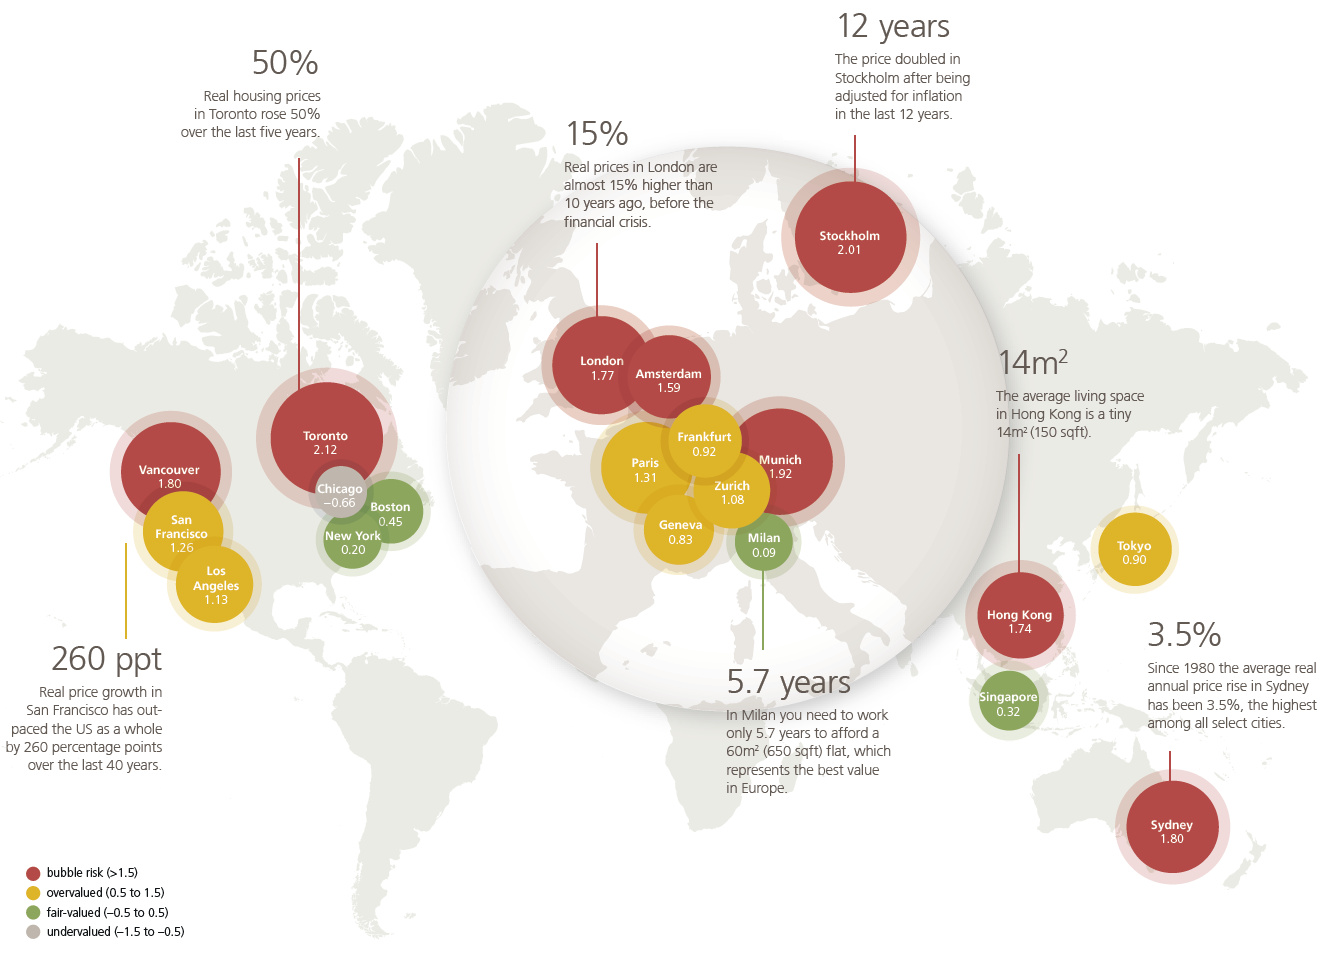 UBS map of global housing bubbles